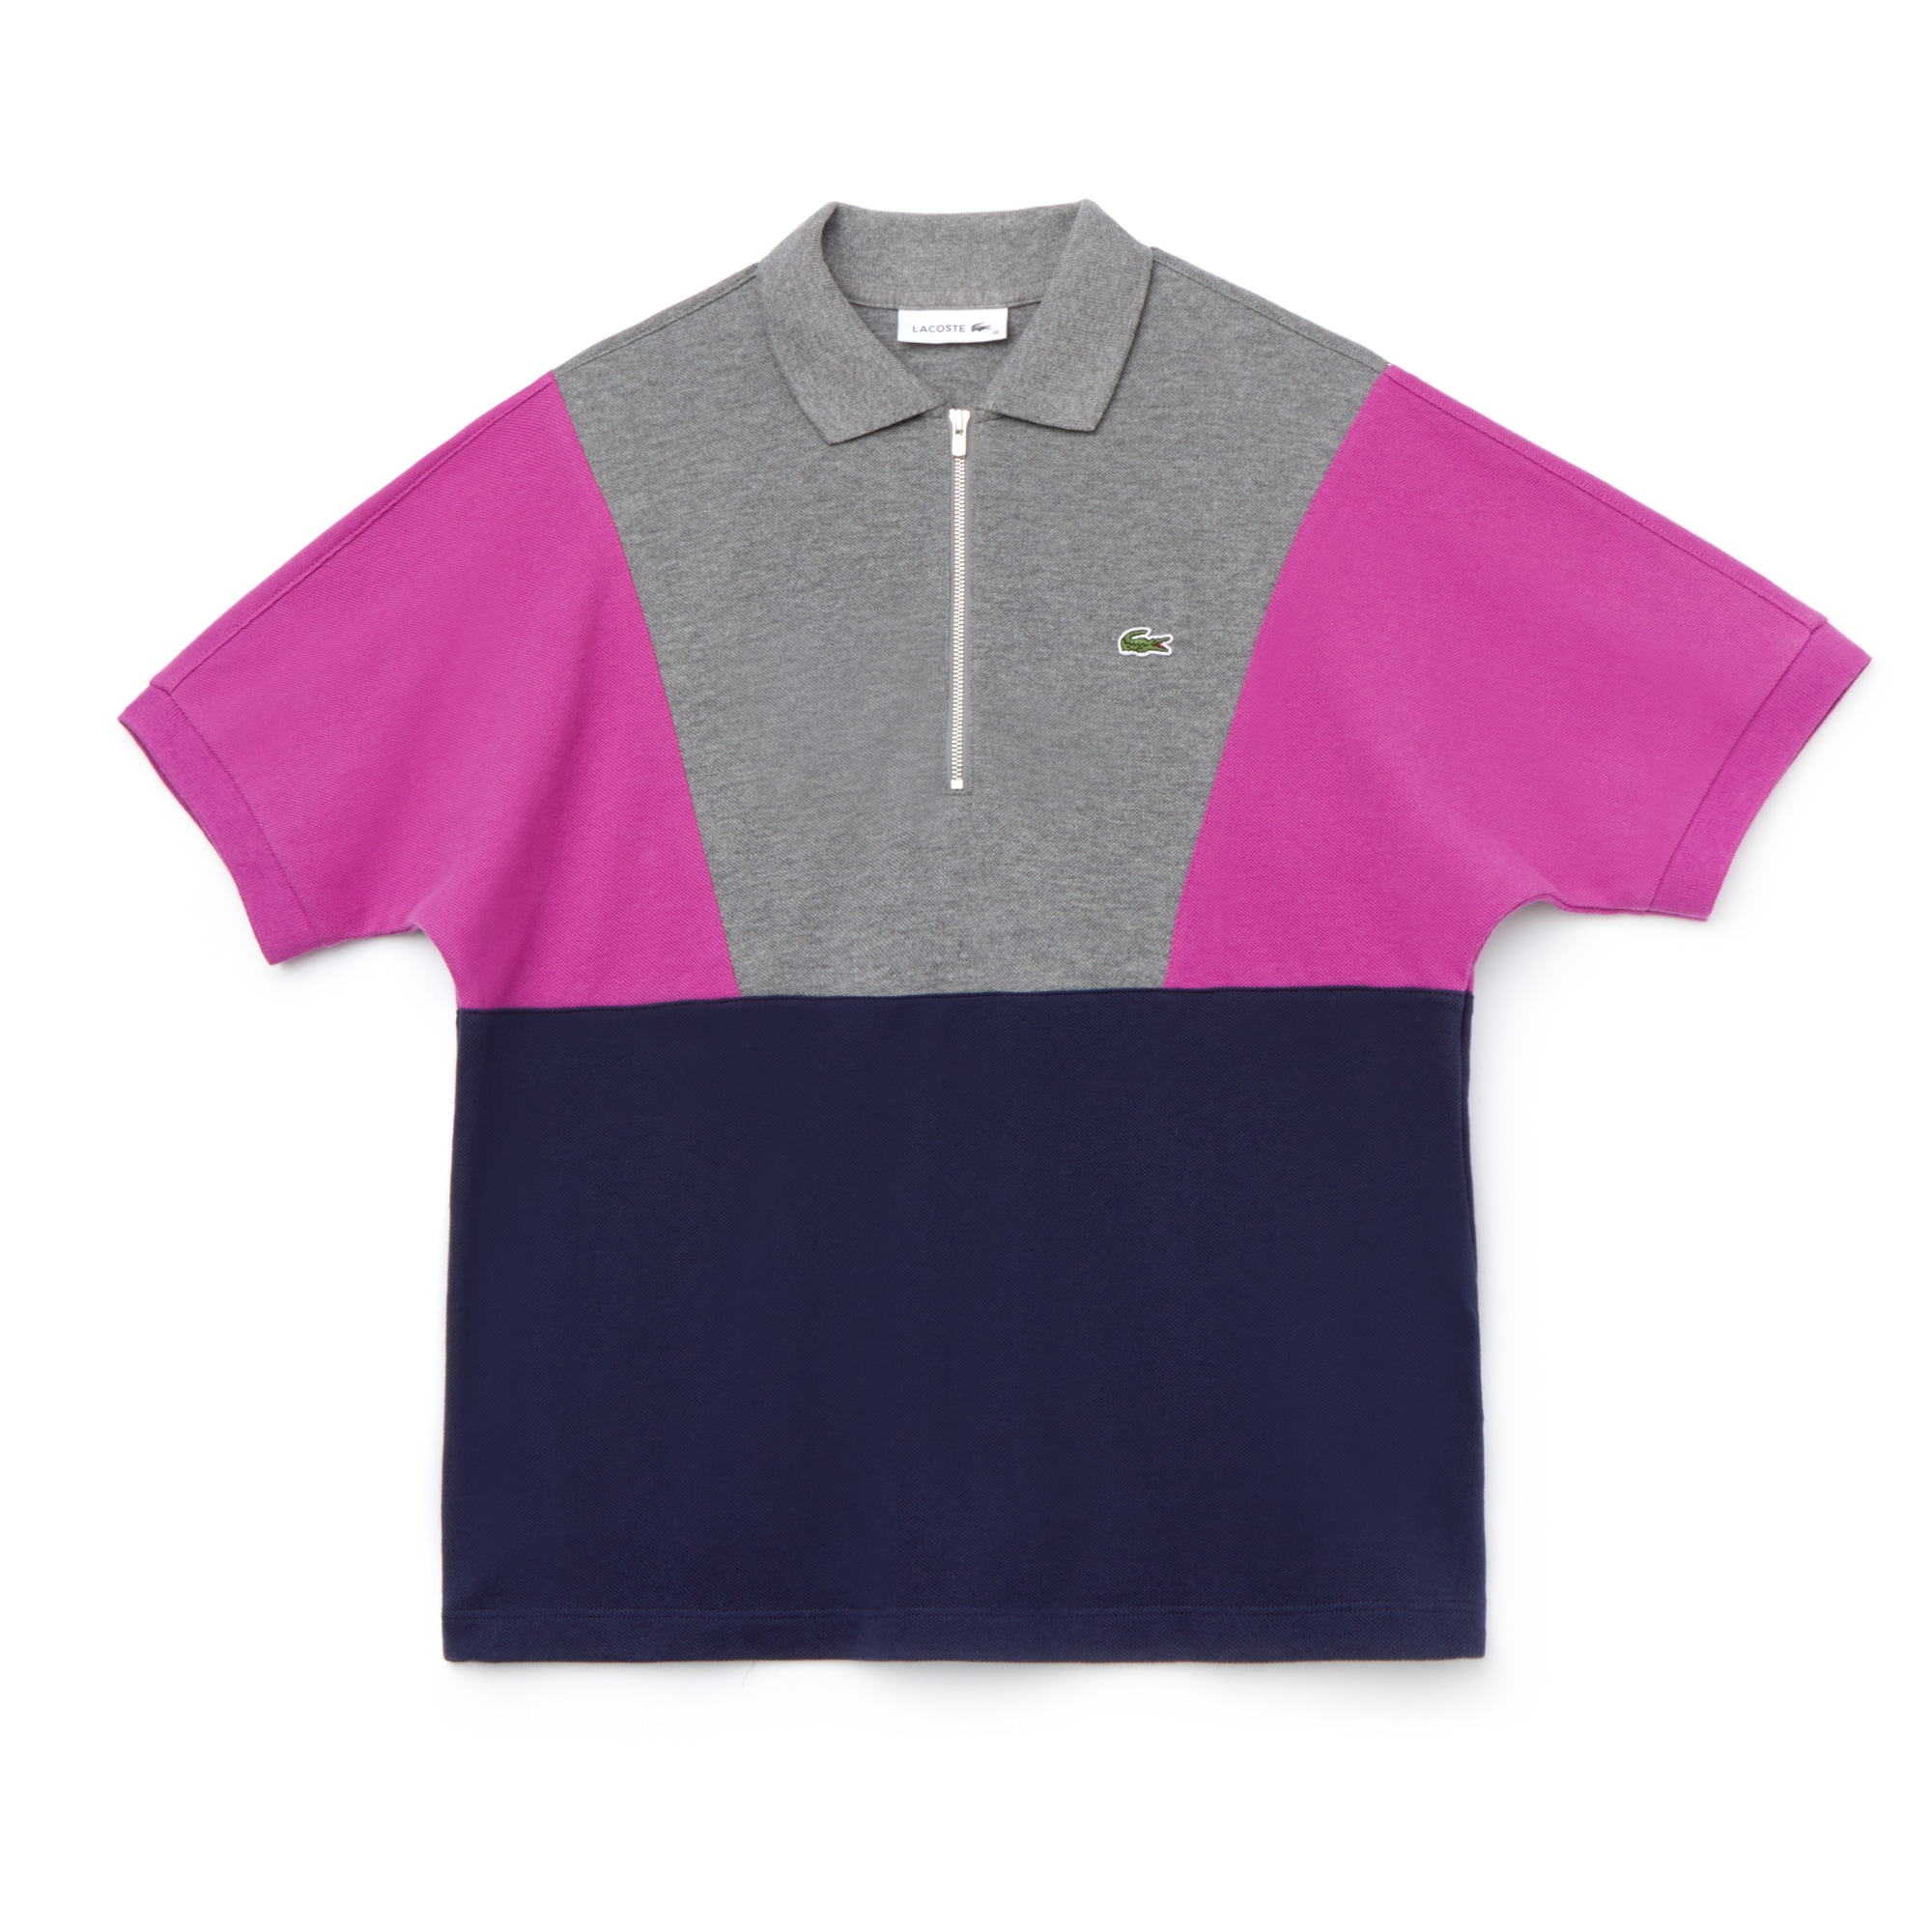 라코스테 Lacoste Womens Zip Neck Colorblock Terrycloth Pique Polo,grey / purple / navy blue